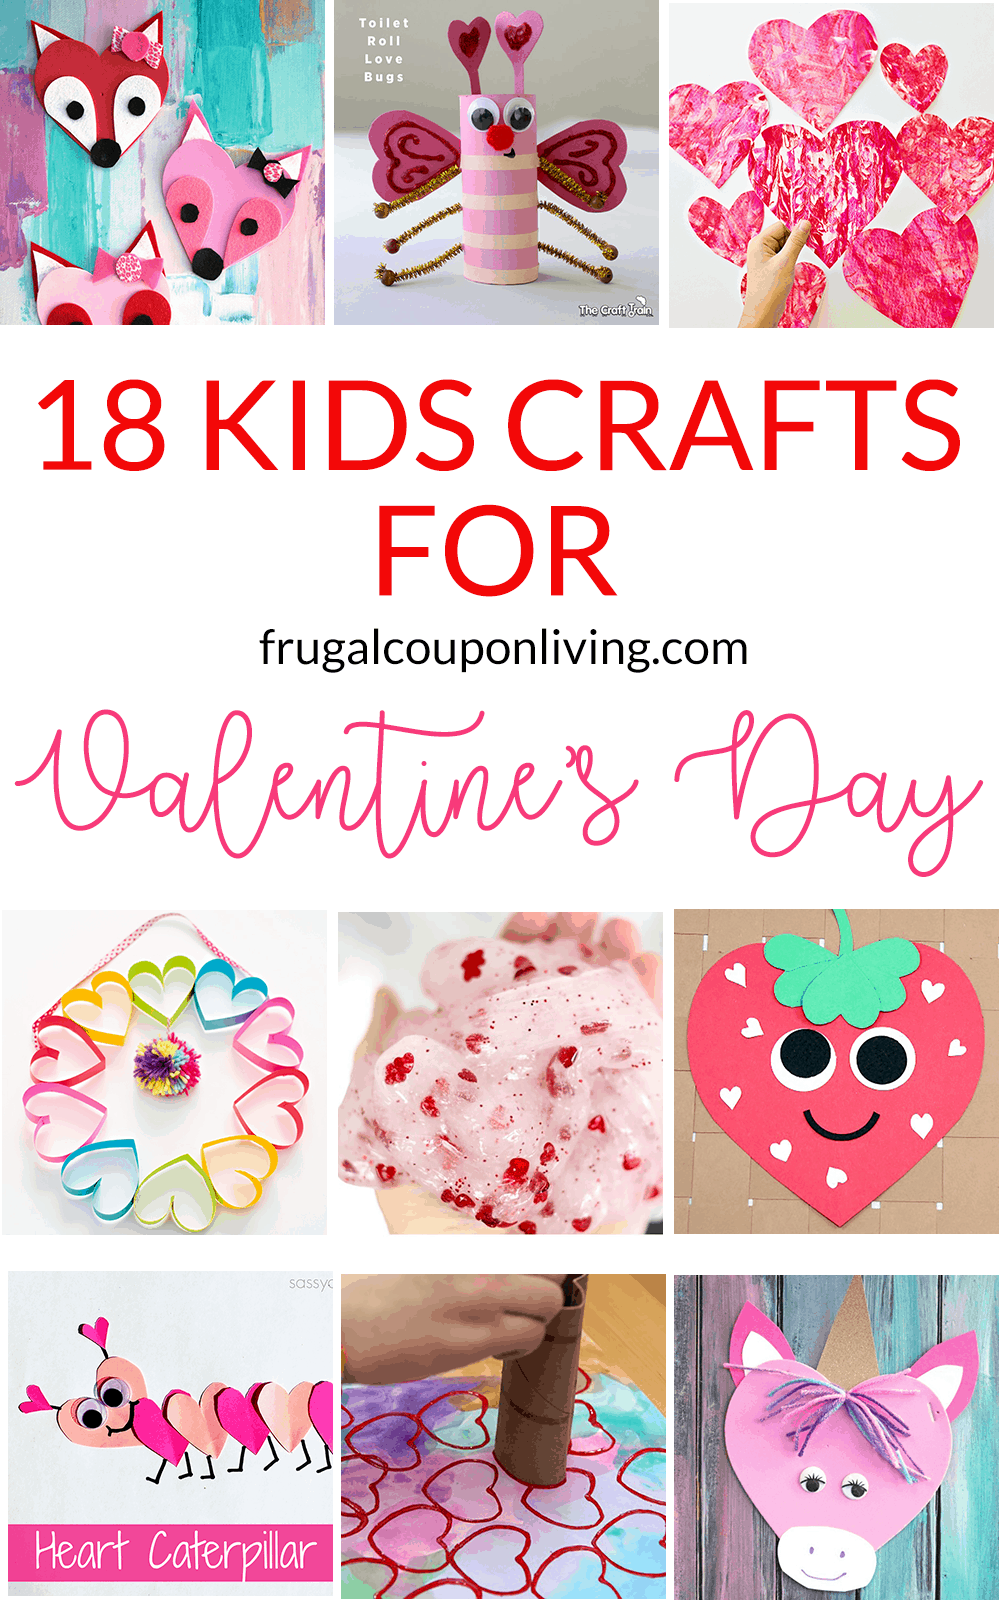 18-kids-crafts-valentines-day